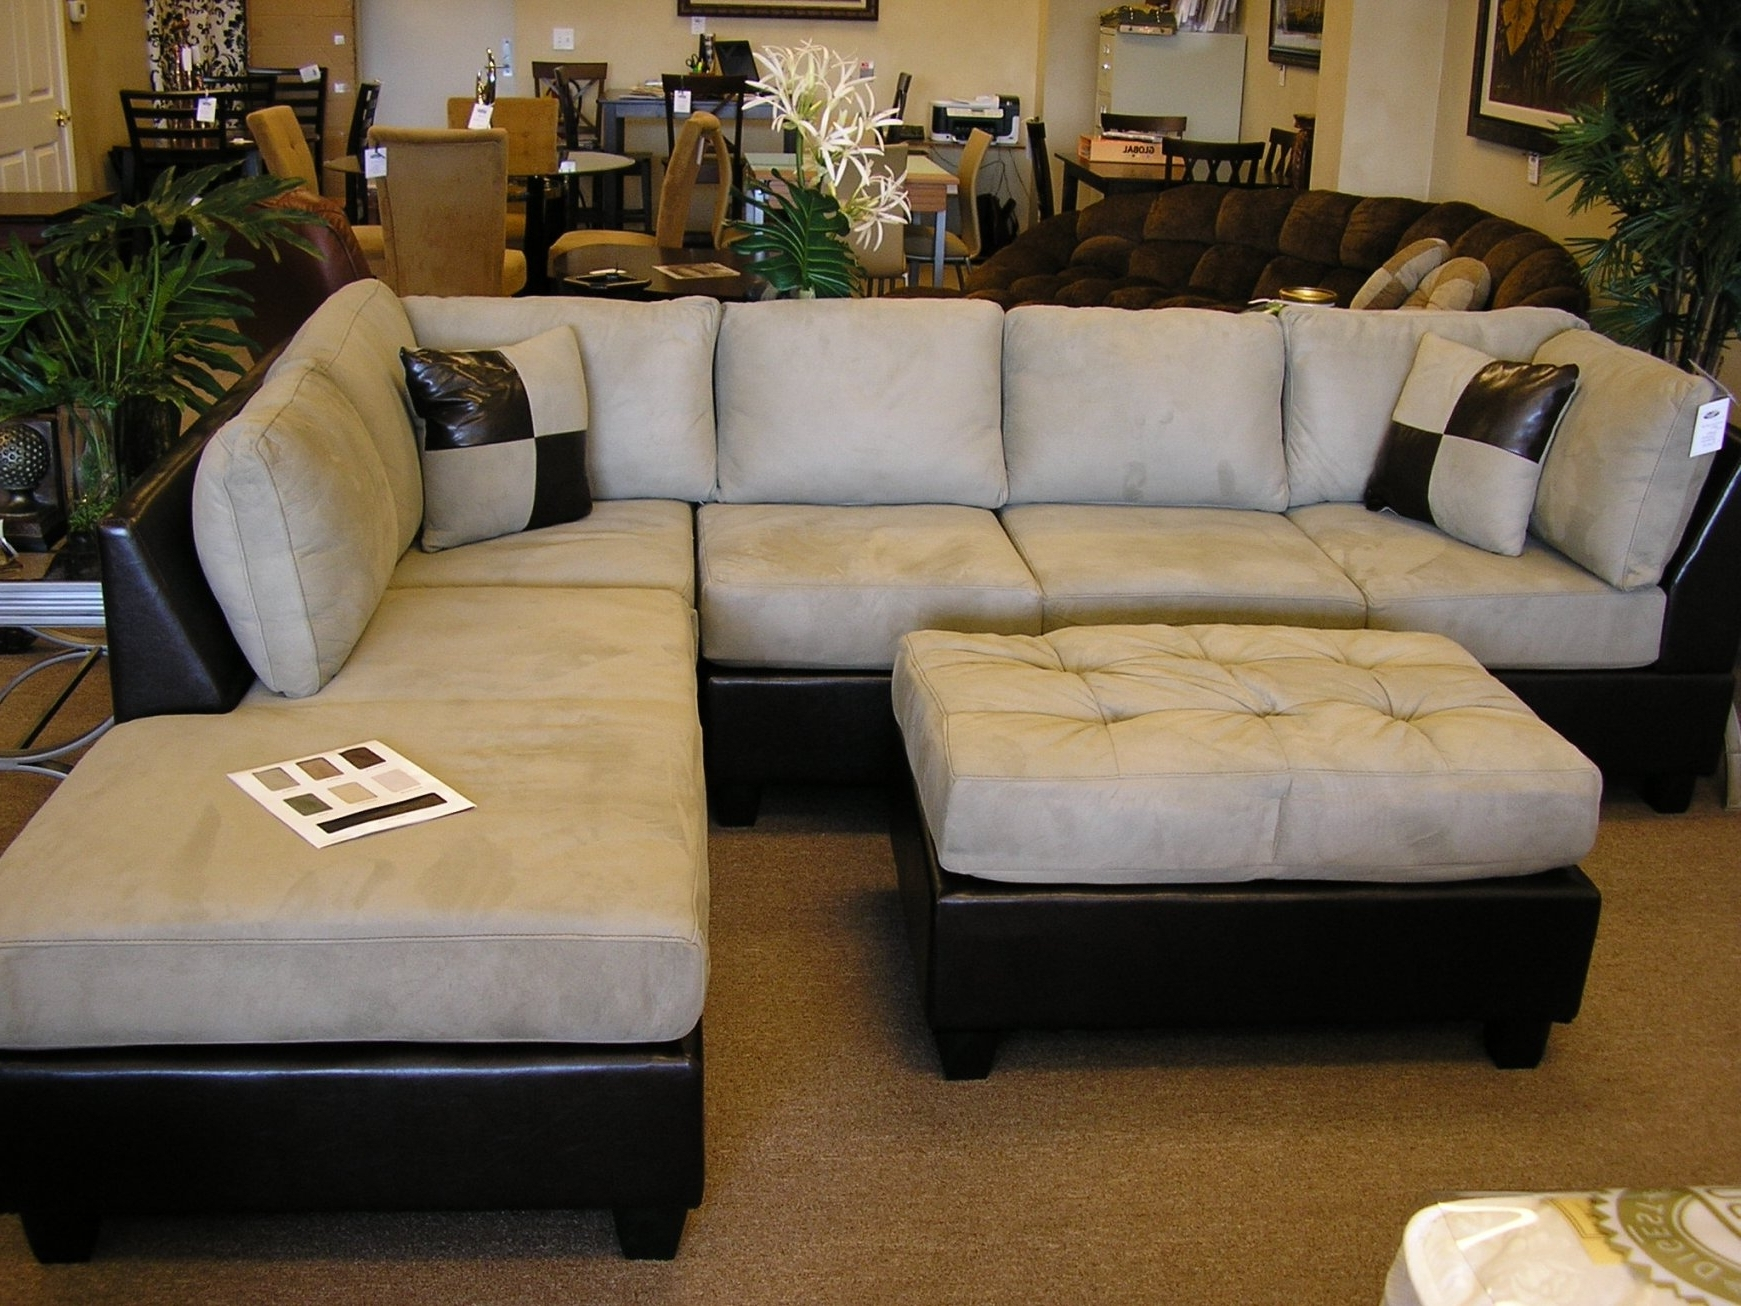 Chaise Lounge Sectionals Regarding 2017 Sectional Sofa With Chaise Lounge 32 On Sofas And Couches (View 3 of 15)